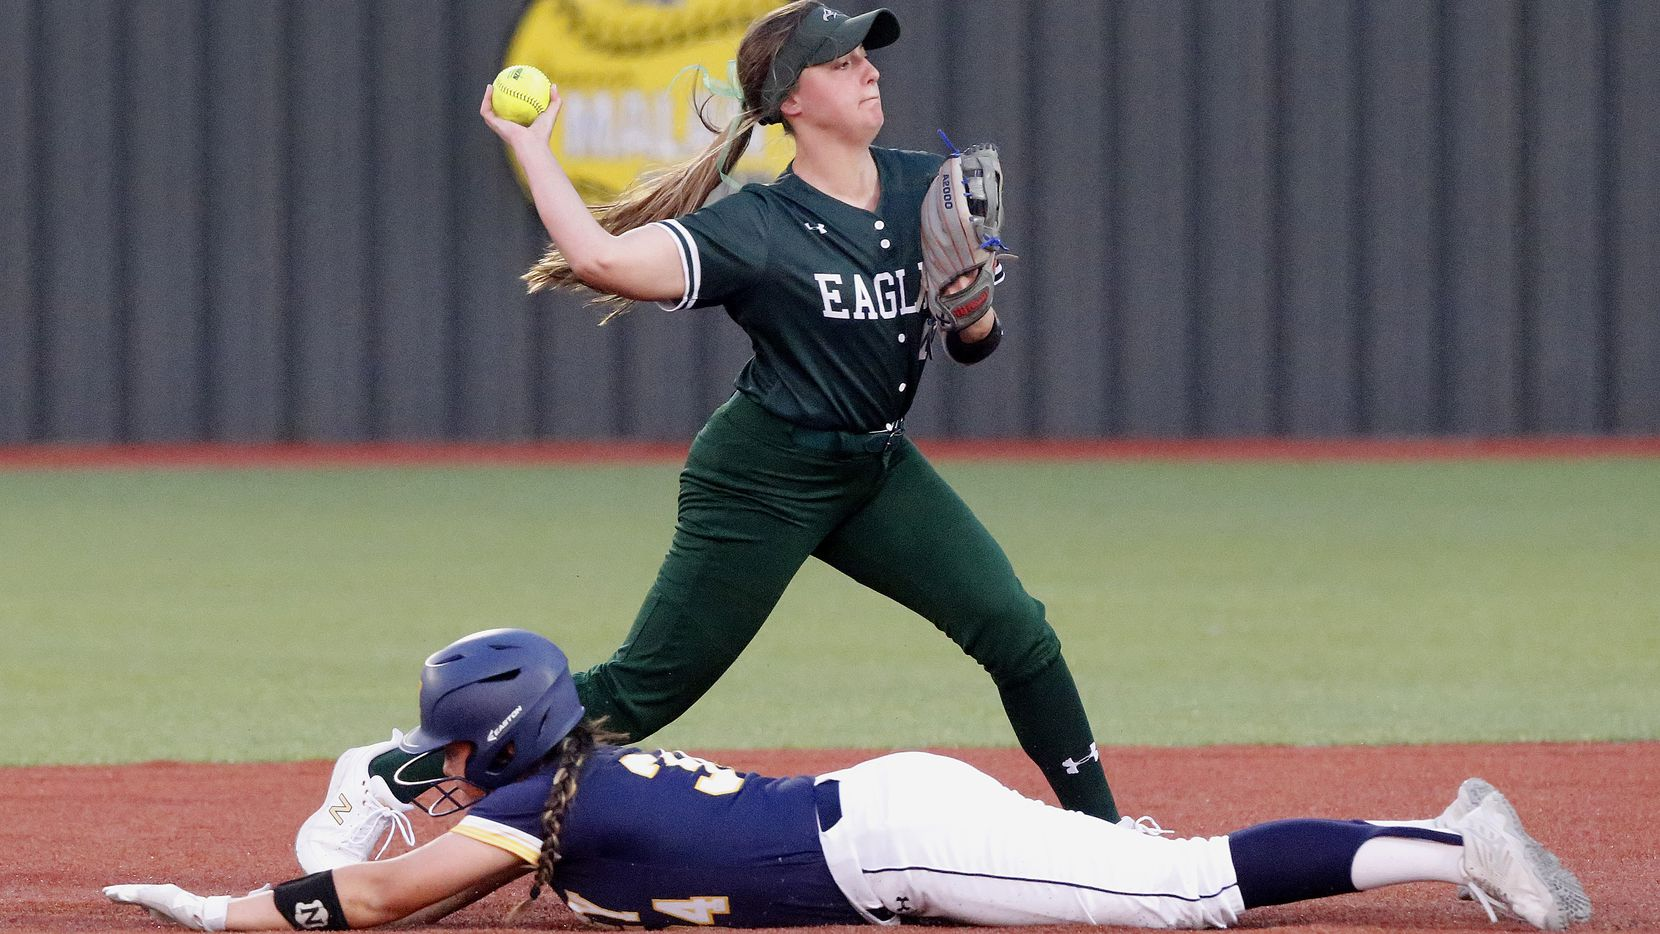 Prosper shortstop Abbey Beasley makes the throw for a double play during the second inning of a 15-0 win over McKinney on Tuesday. Beasley hit two of Prosper's six home runs in the game. (Stewart F. House/Special Contributor)